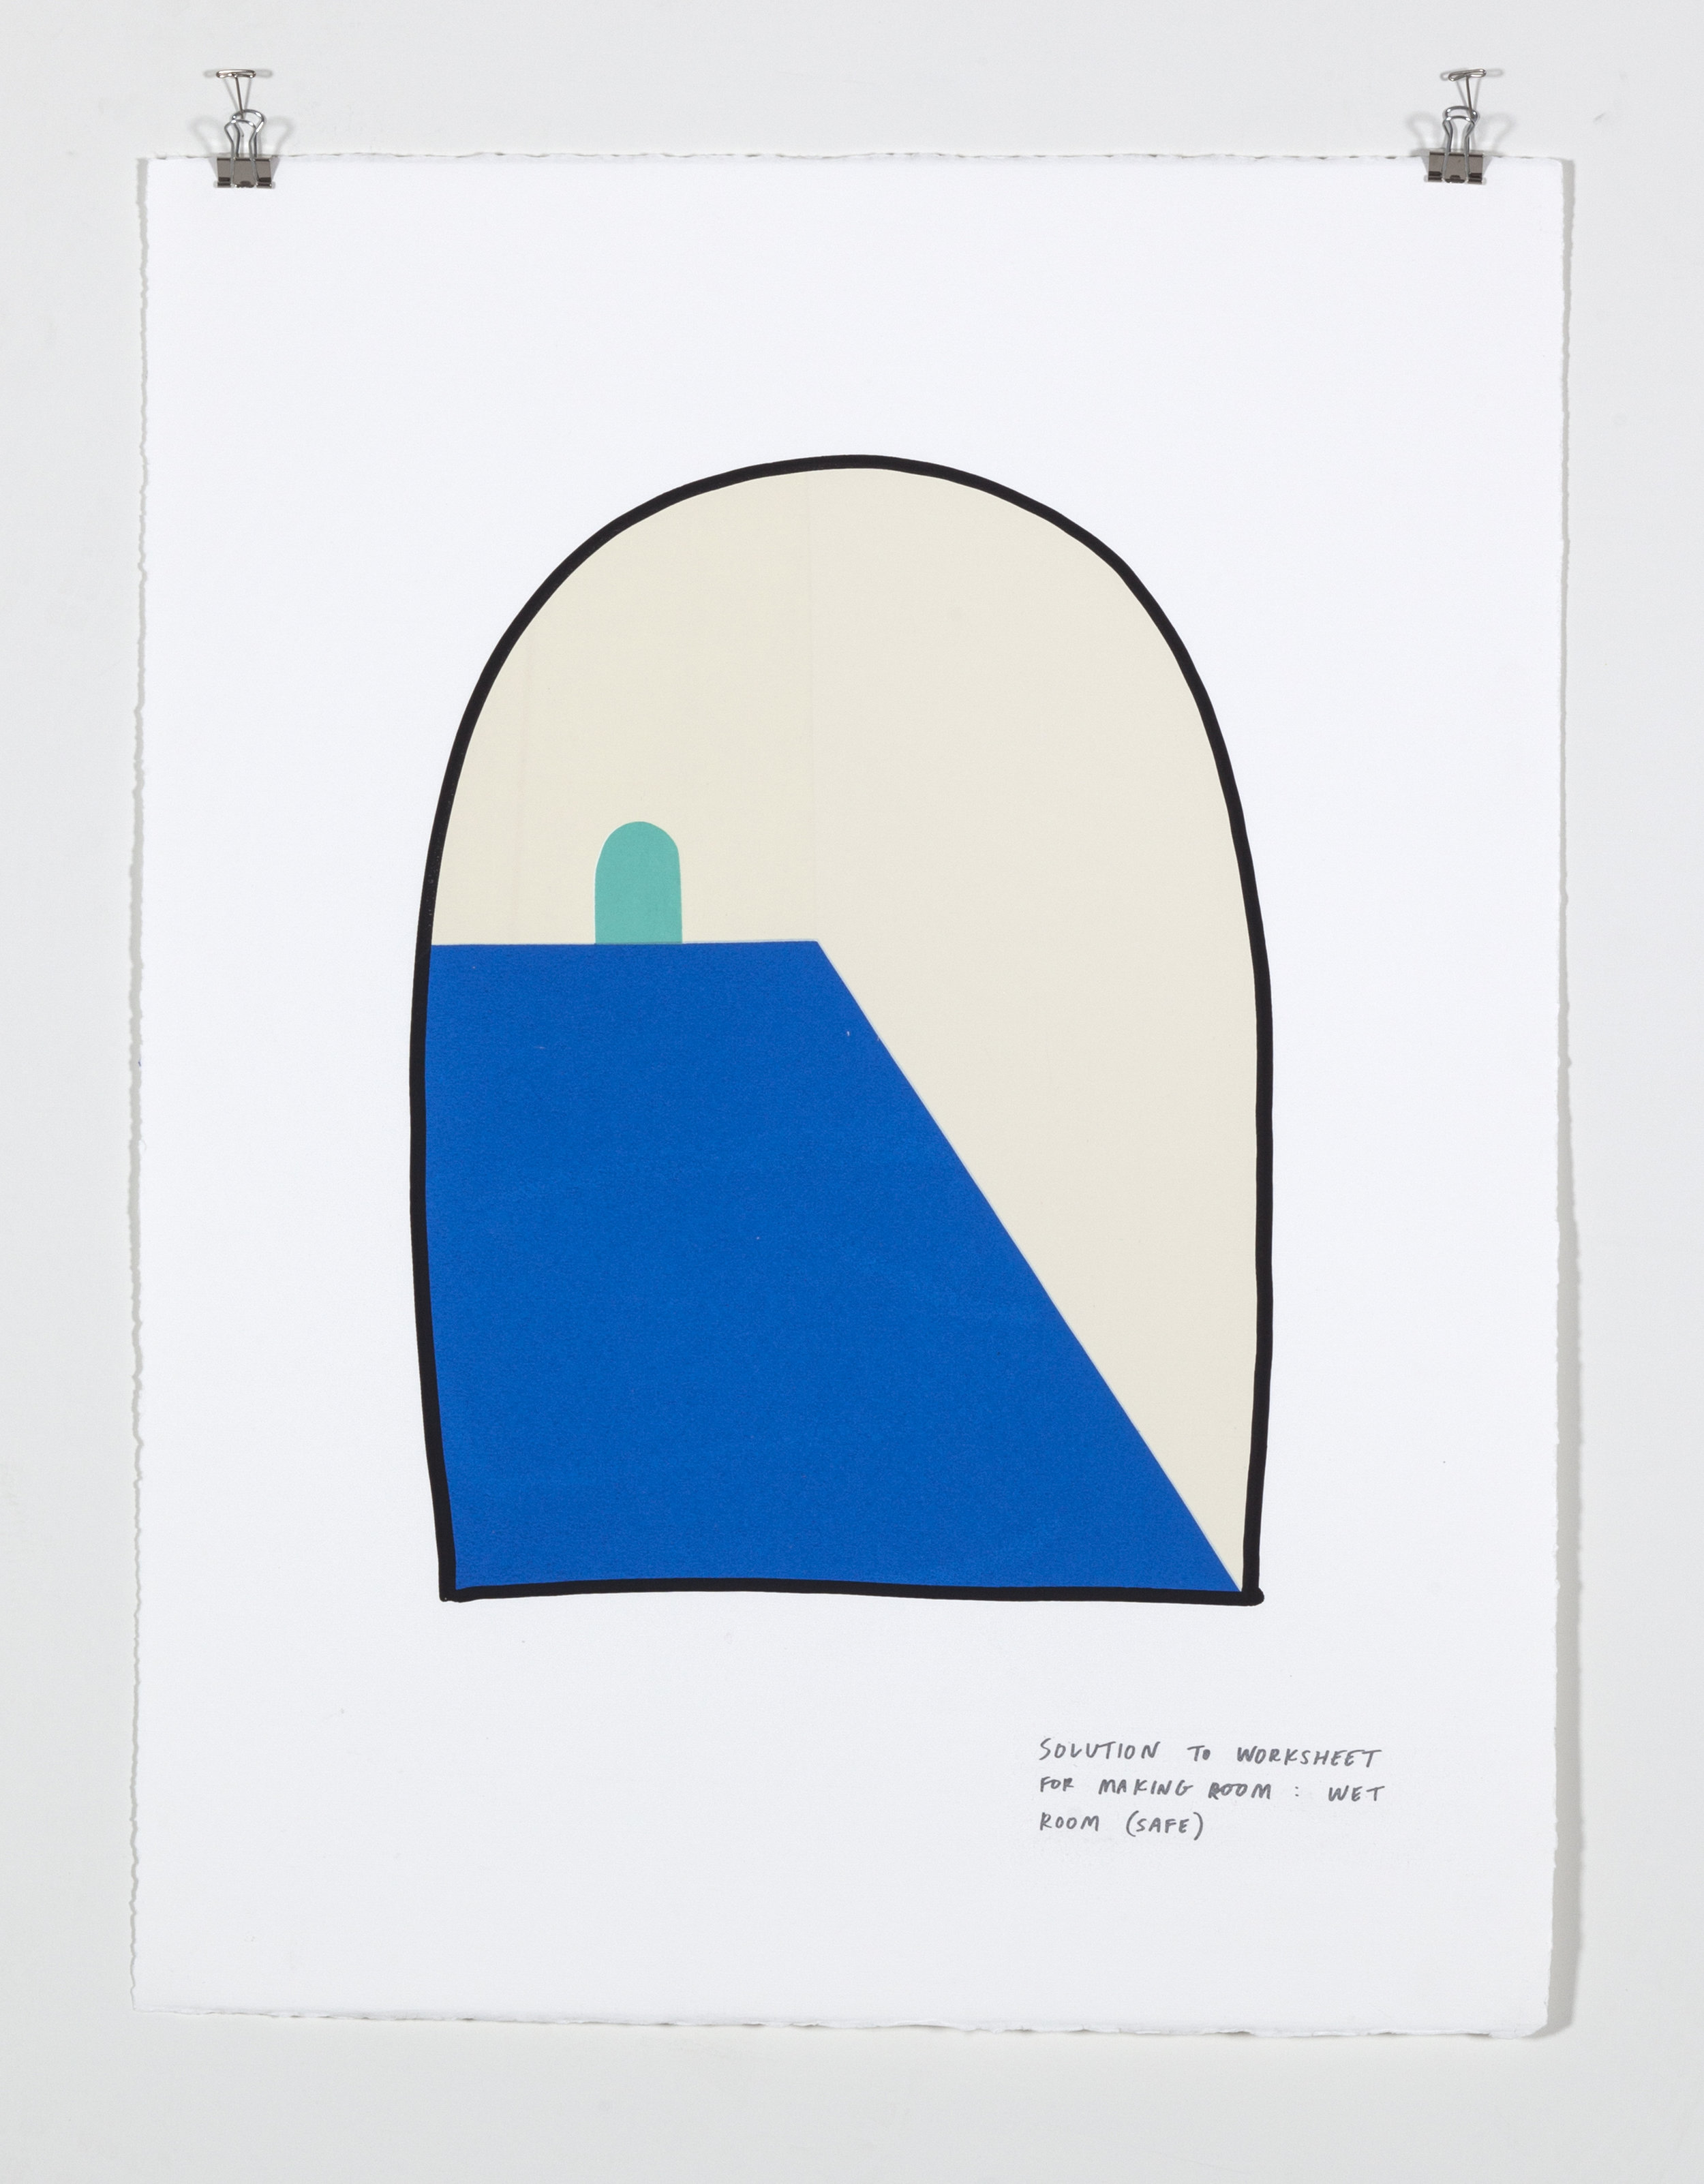 Solution to Worksheet for Making Room: Wet Room (Safe),  2018  Five color silkscreen print on paper 19 7/8 x 25 7/8 inches